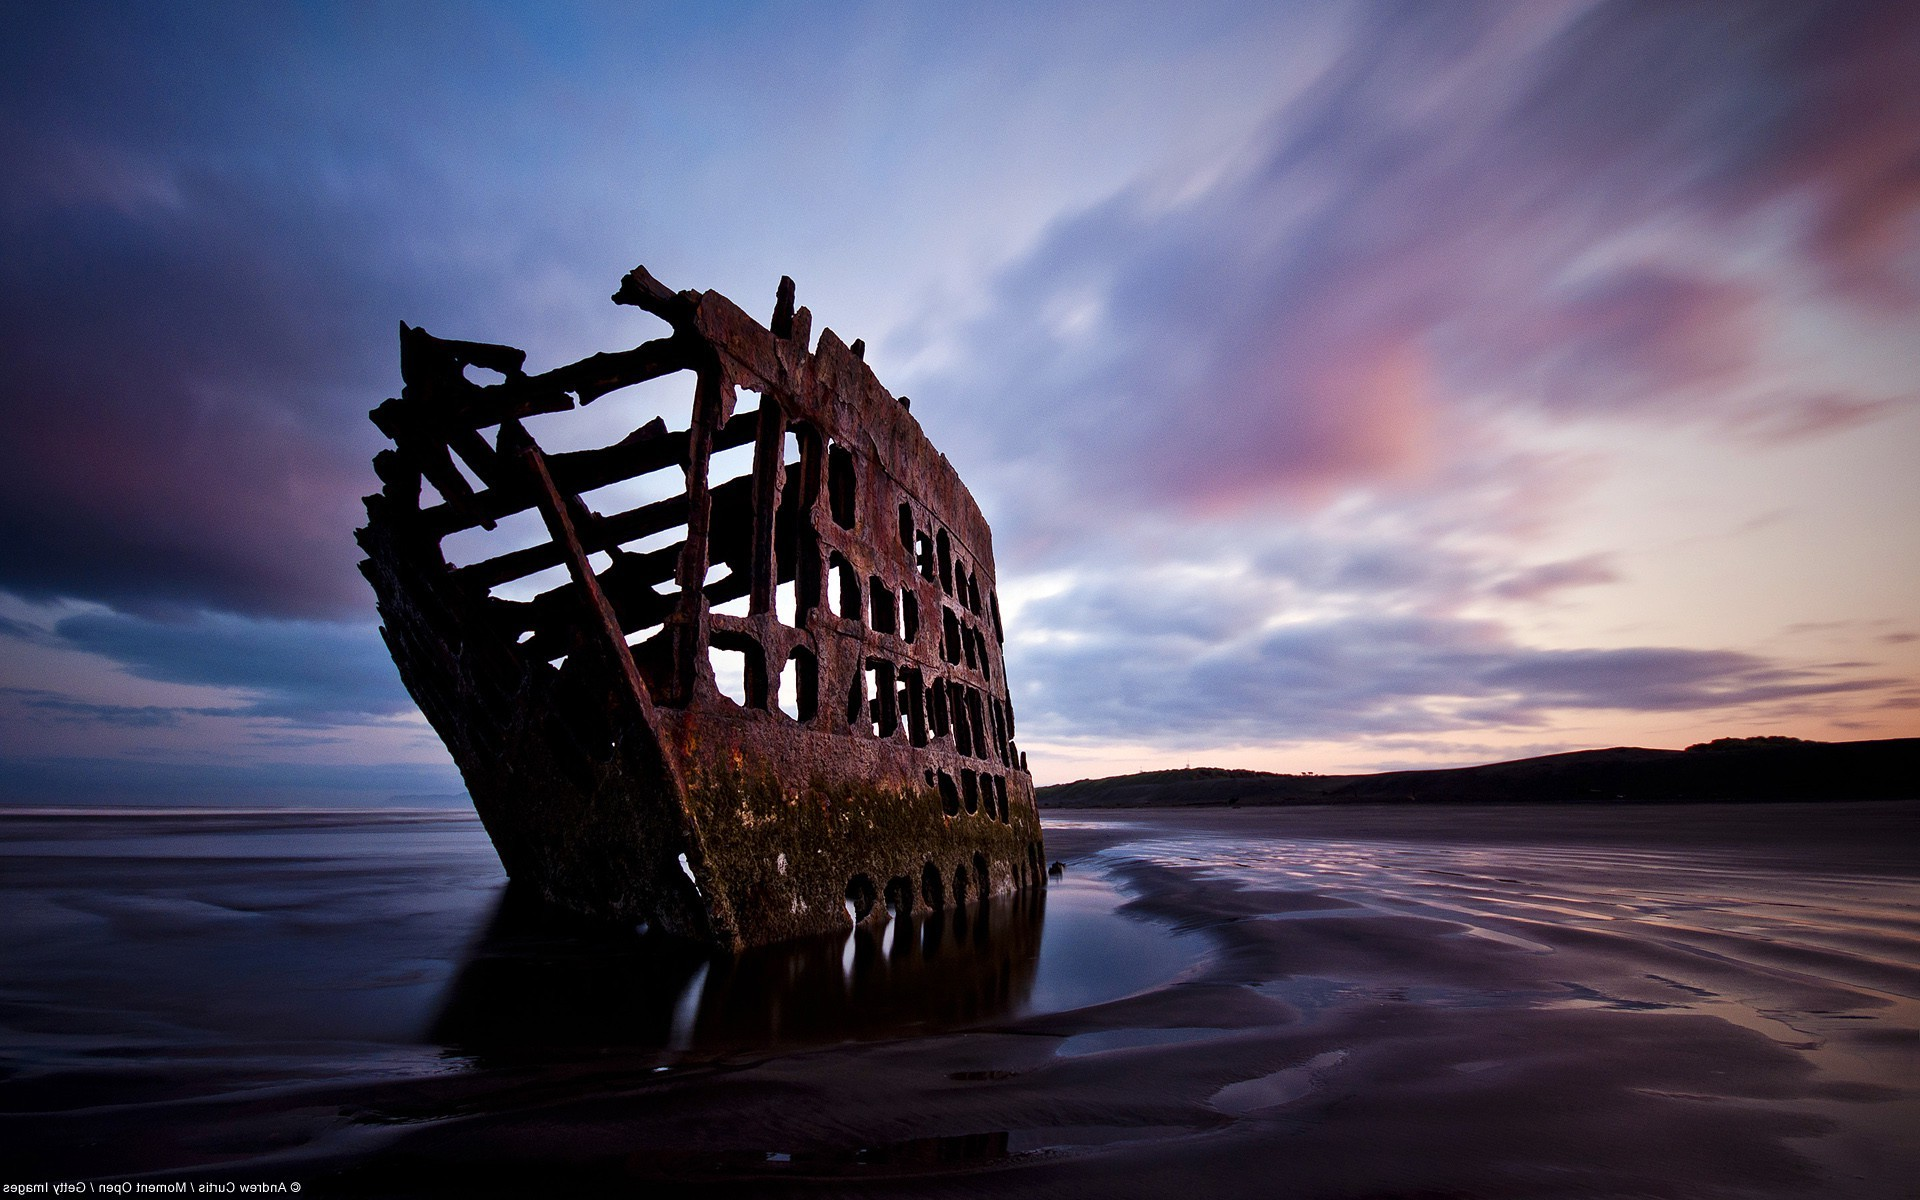 Cars The Movie Wallpapers Free Nature Landscape Wreck Shipwreck Oregon Beach